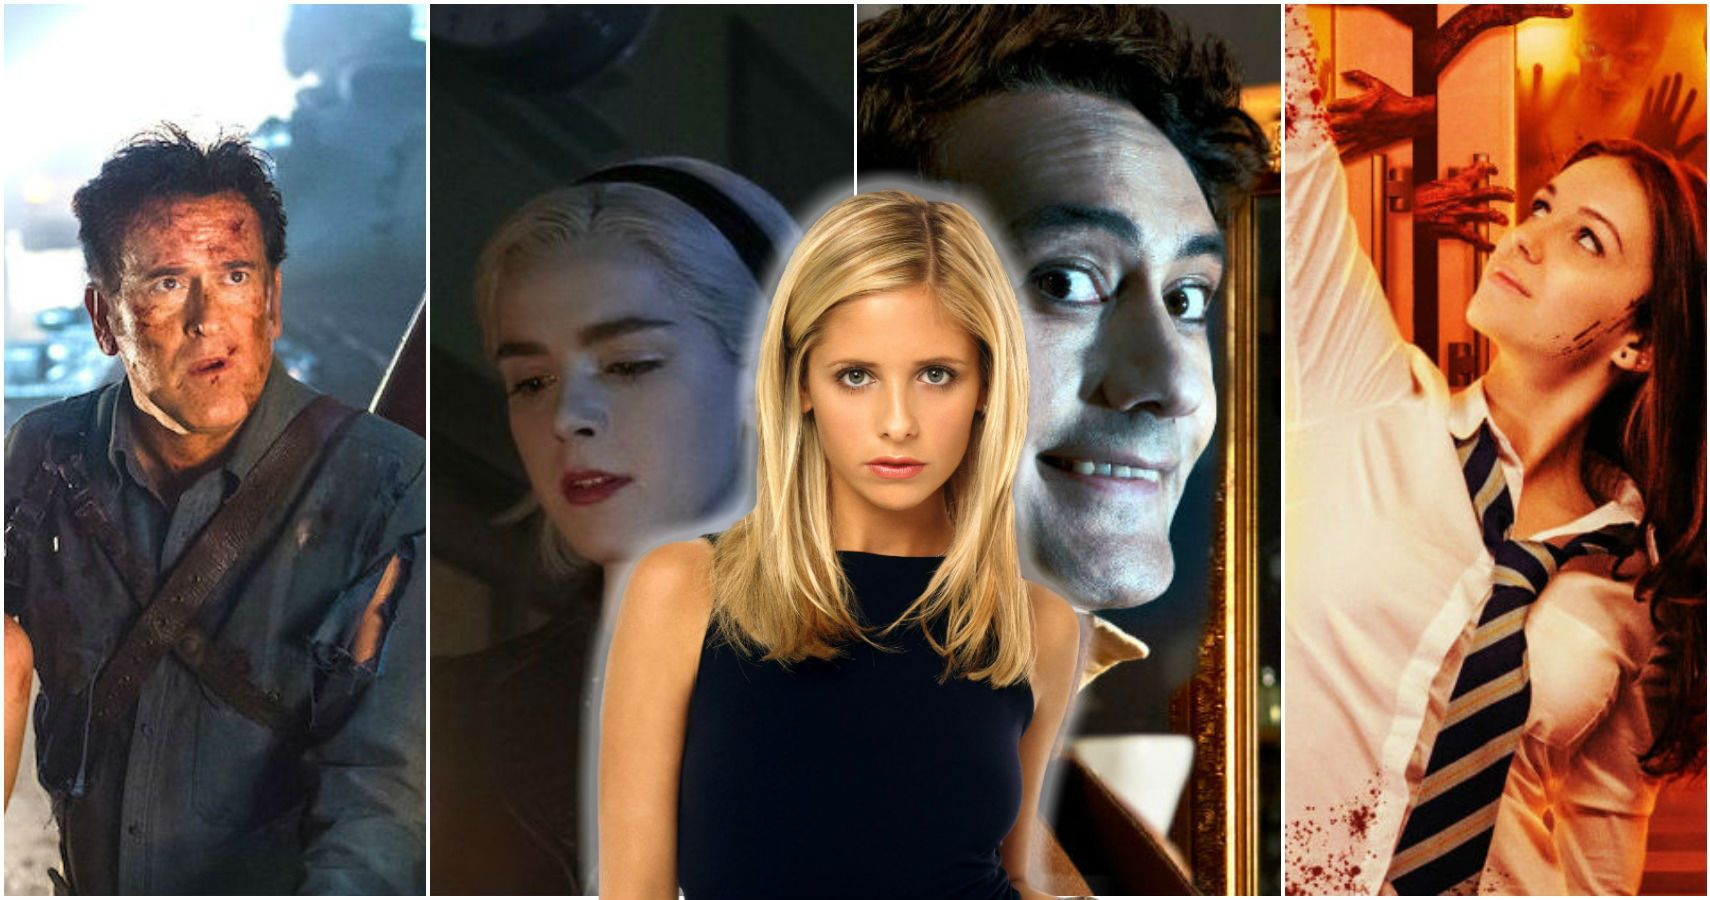 Buffy The Vampire Slayer: 10 Best Movies & TV Shows For Fans To Watch